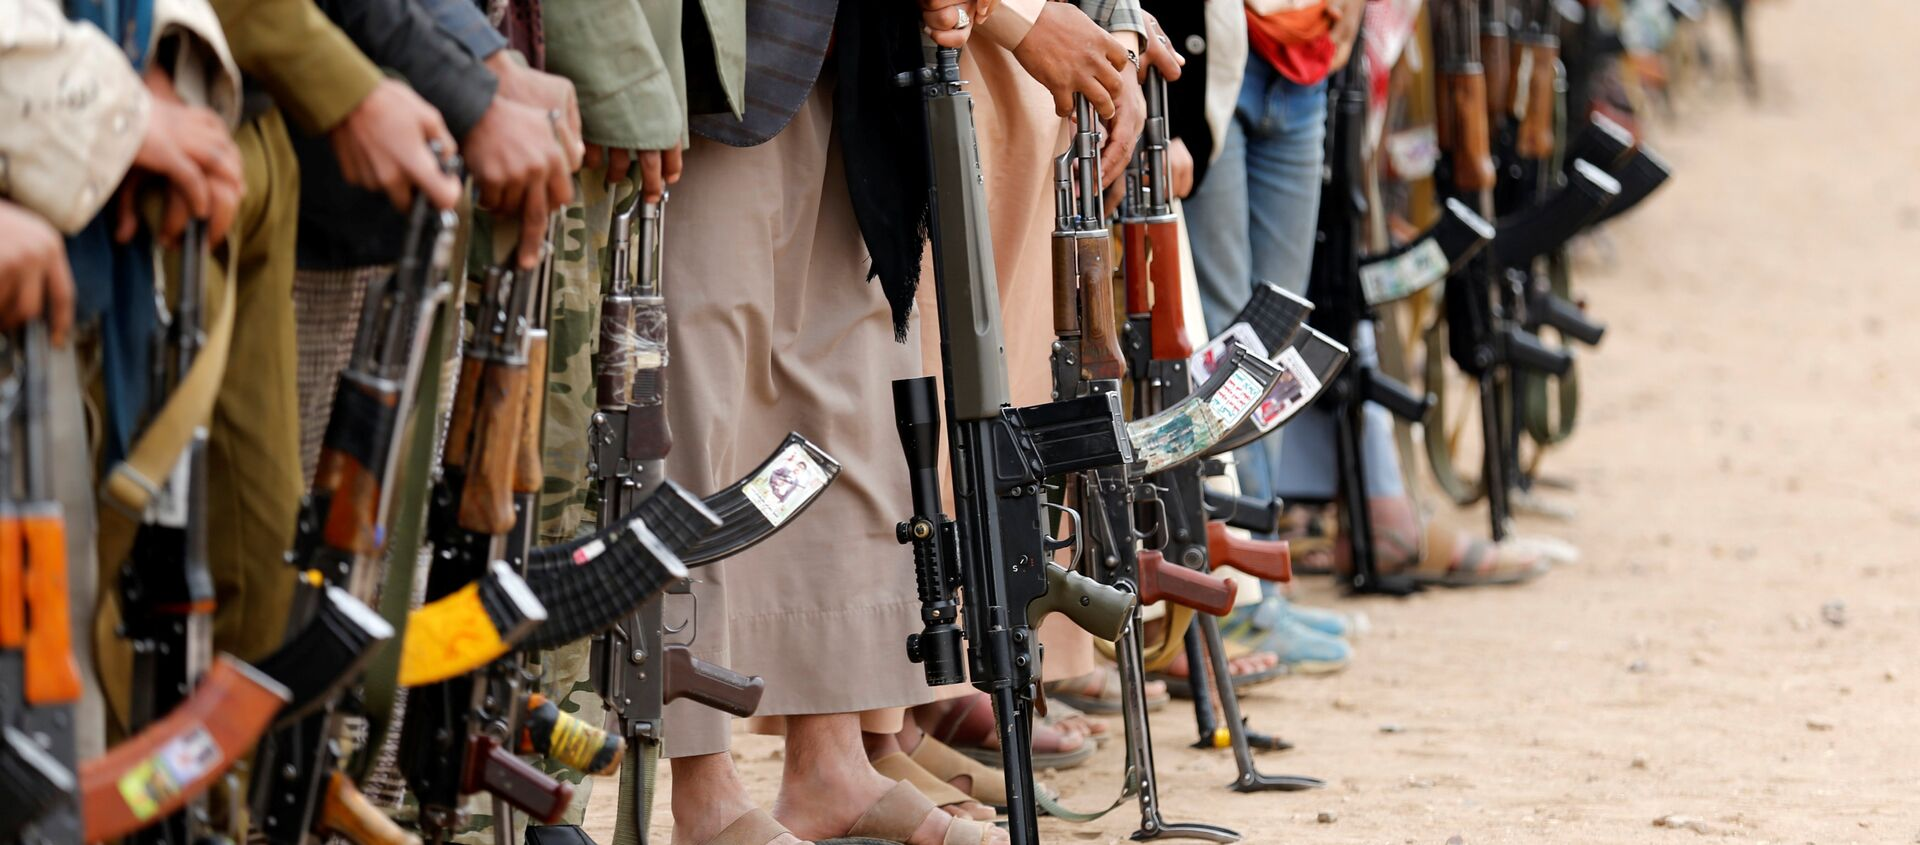 Tribesmen hold their weapons as they attend a tribal gathering to show support to the Houthi movement in Sanaa, Yemen - Sputnik Mundo, 1920, 14.12.2016